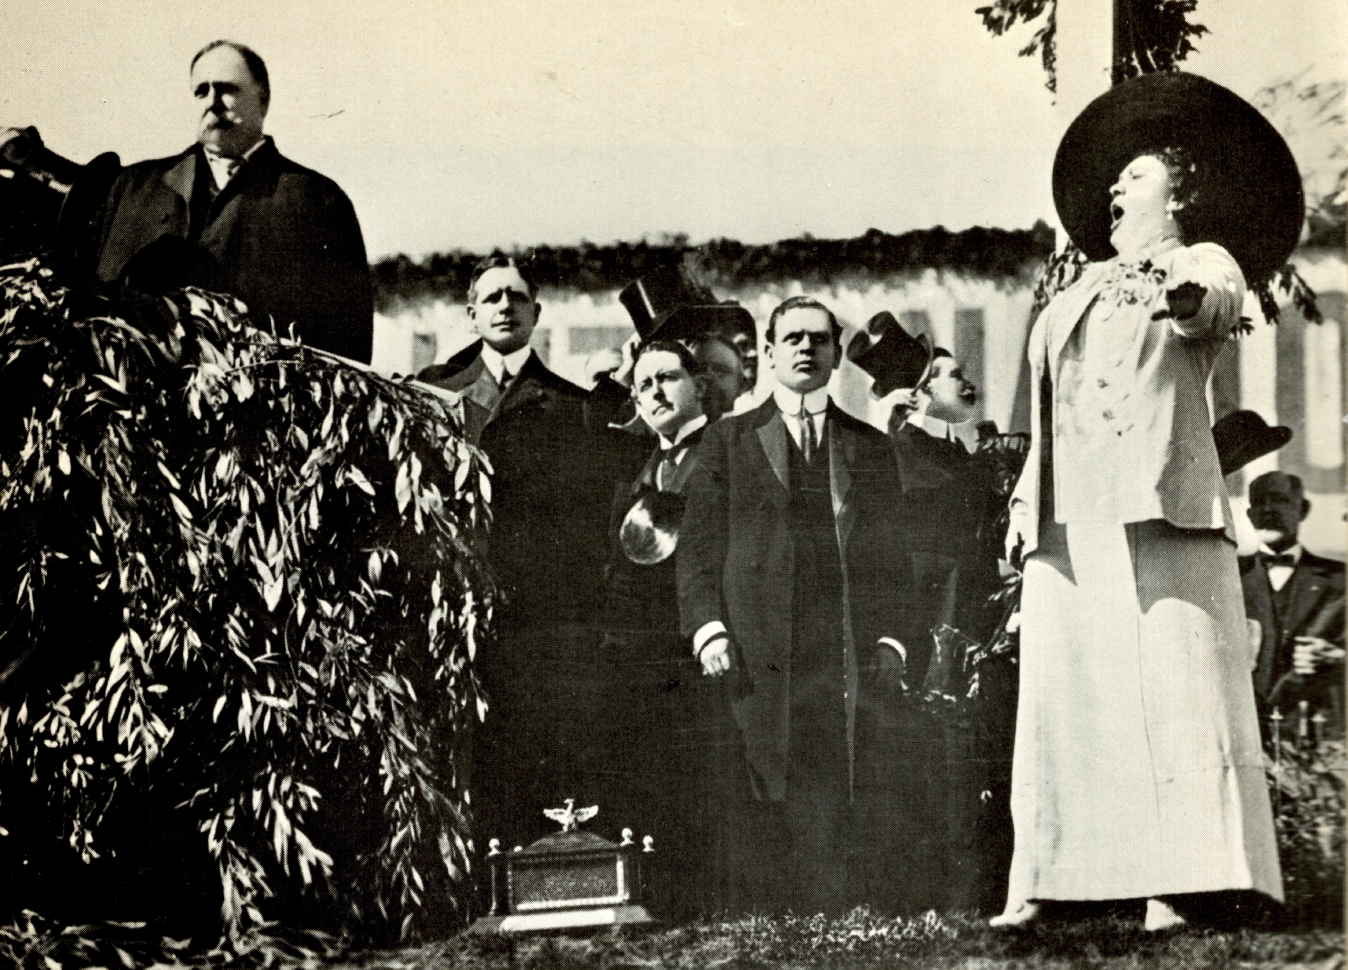 Nordica with President Taft, Groundbreaking ceremony for Panama-Pacific Exposition, San Francisco 1911